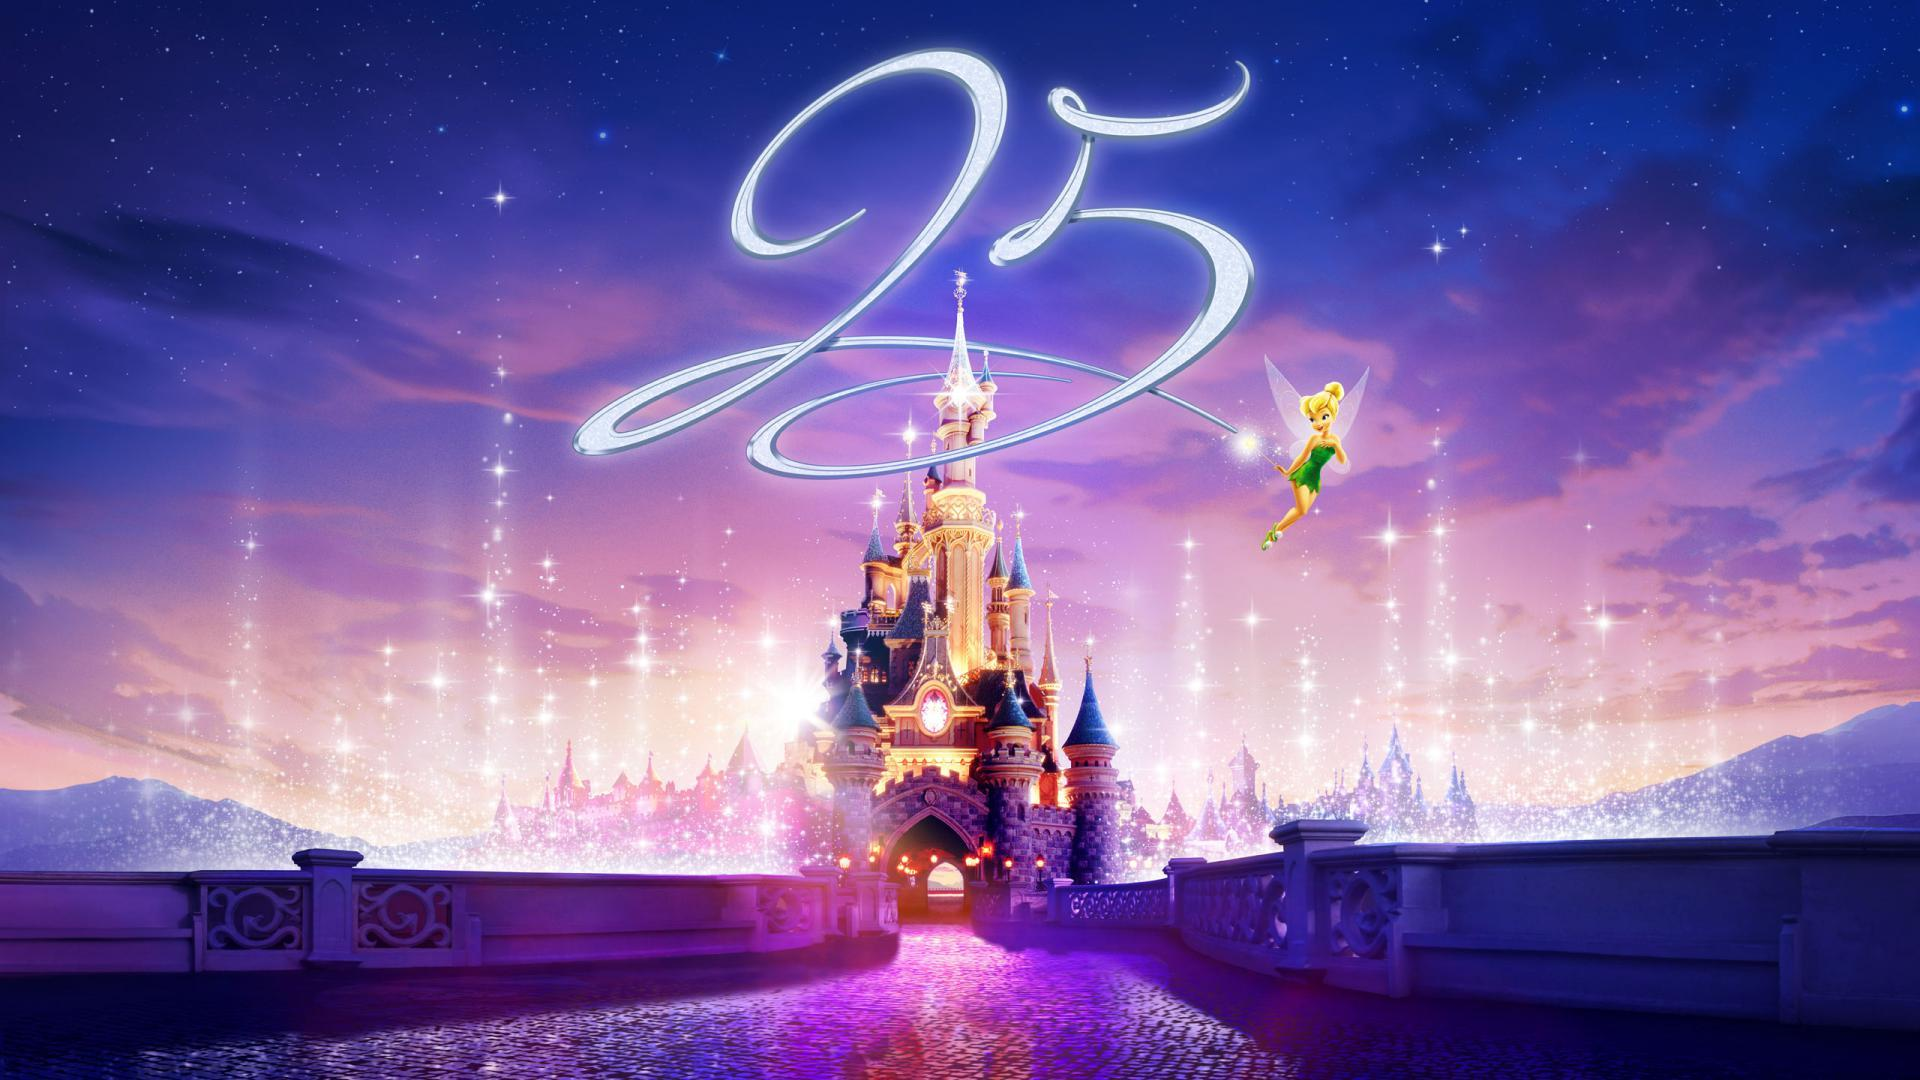 16-9_hd13303_2018dec31_sleeping-beauty-castle-with25thlogo